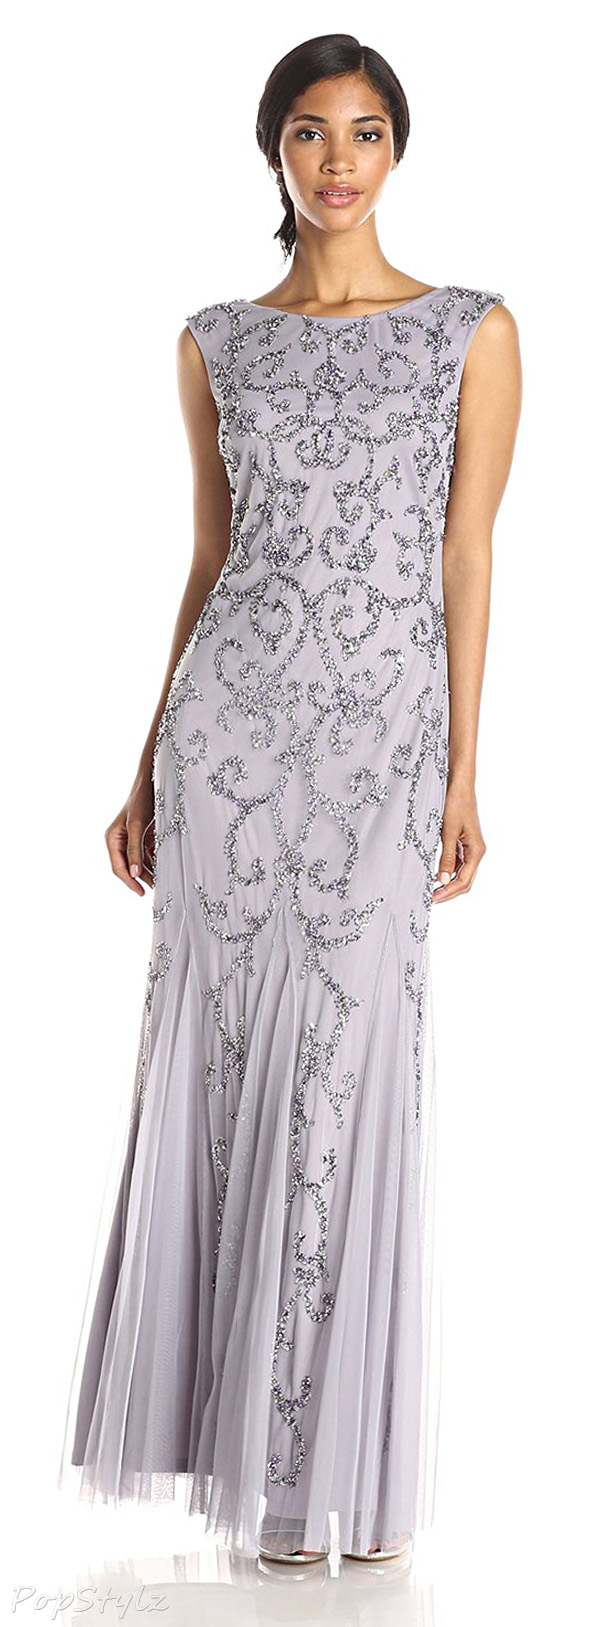 Adrianna Papell Women's Cap Sleeve Beaded Gown